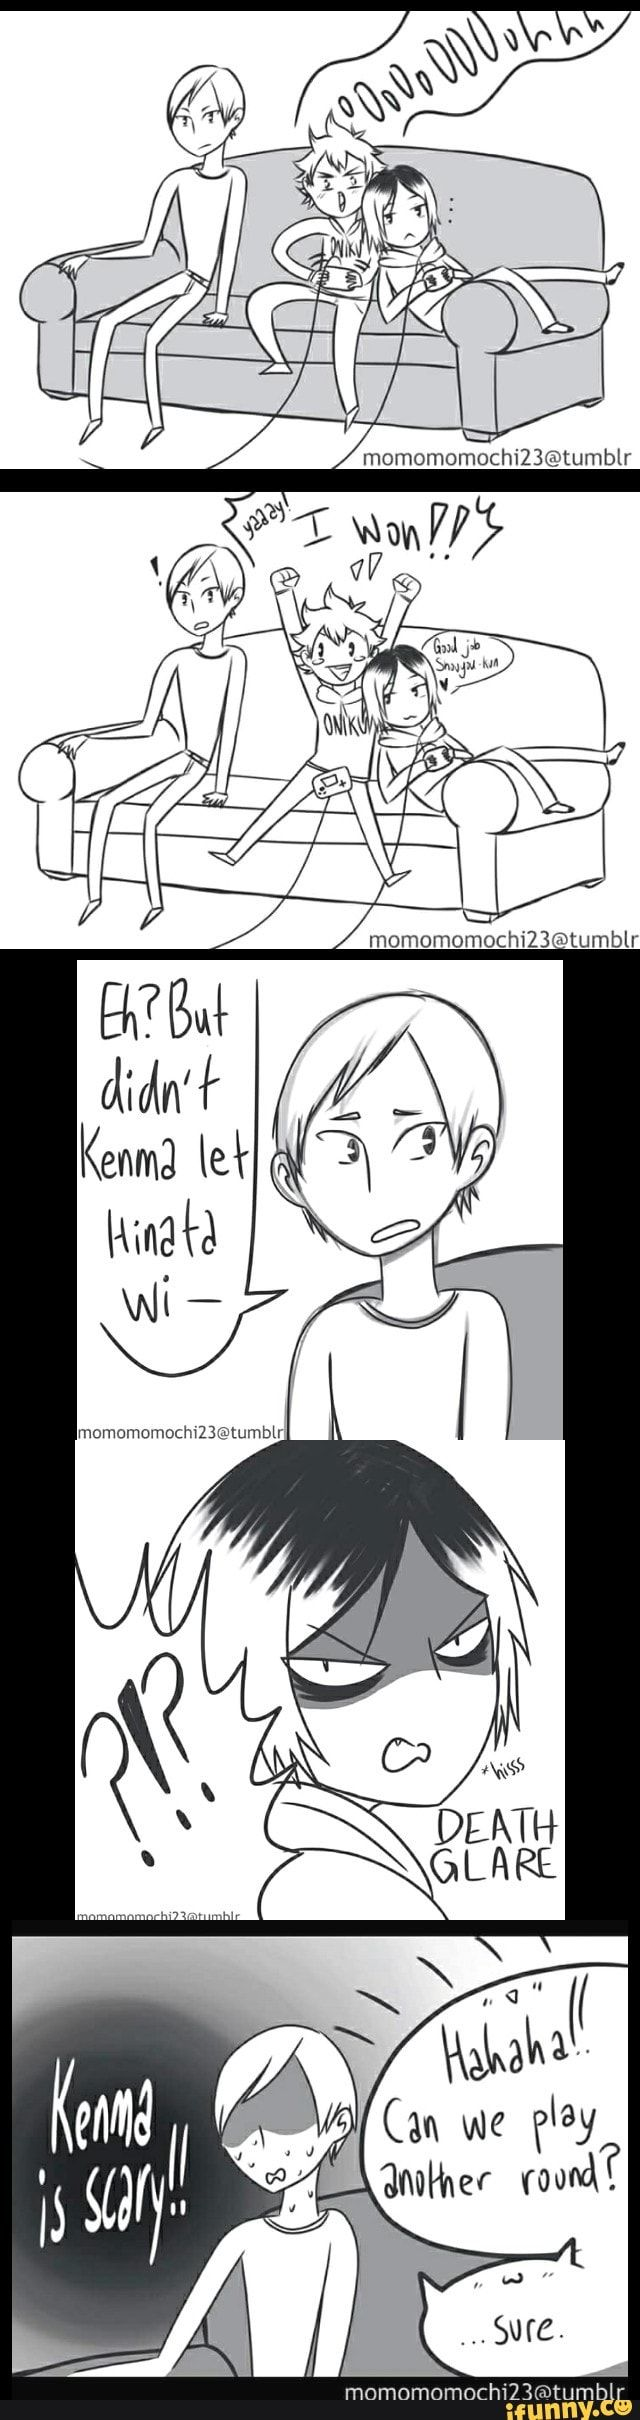 #haikyuu AW KENMA THOUGHTFULLY CARES ABOUT HINATA'S HAPPINESS